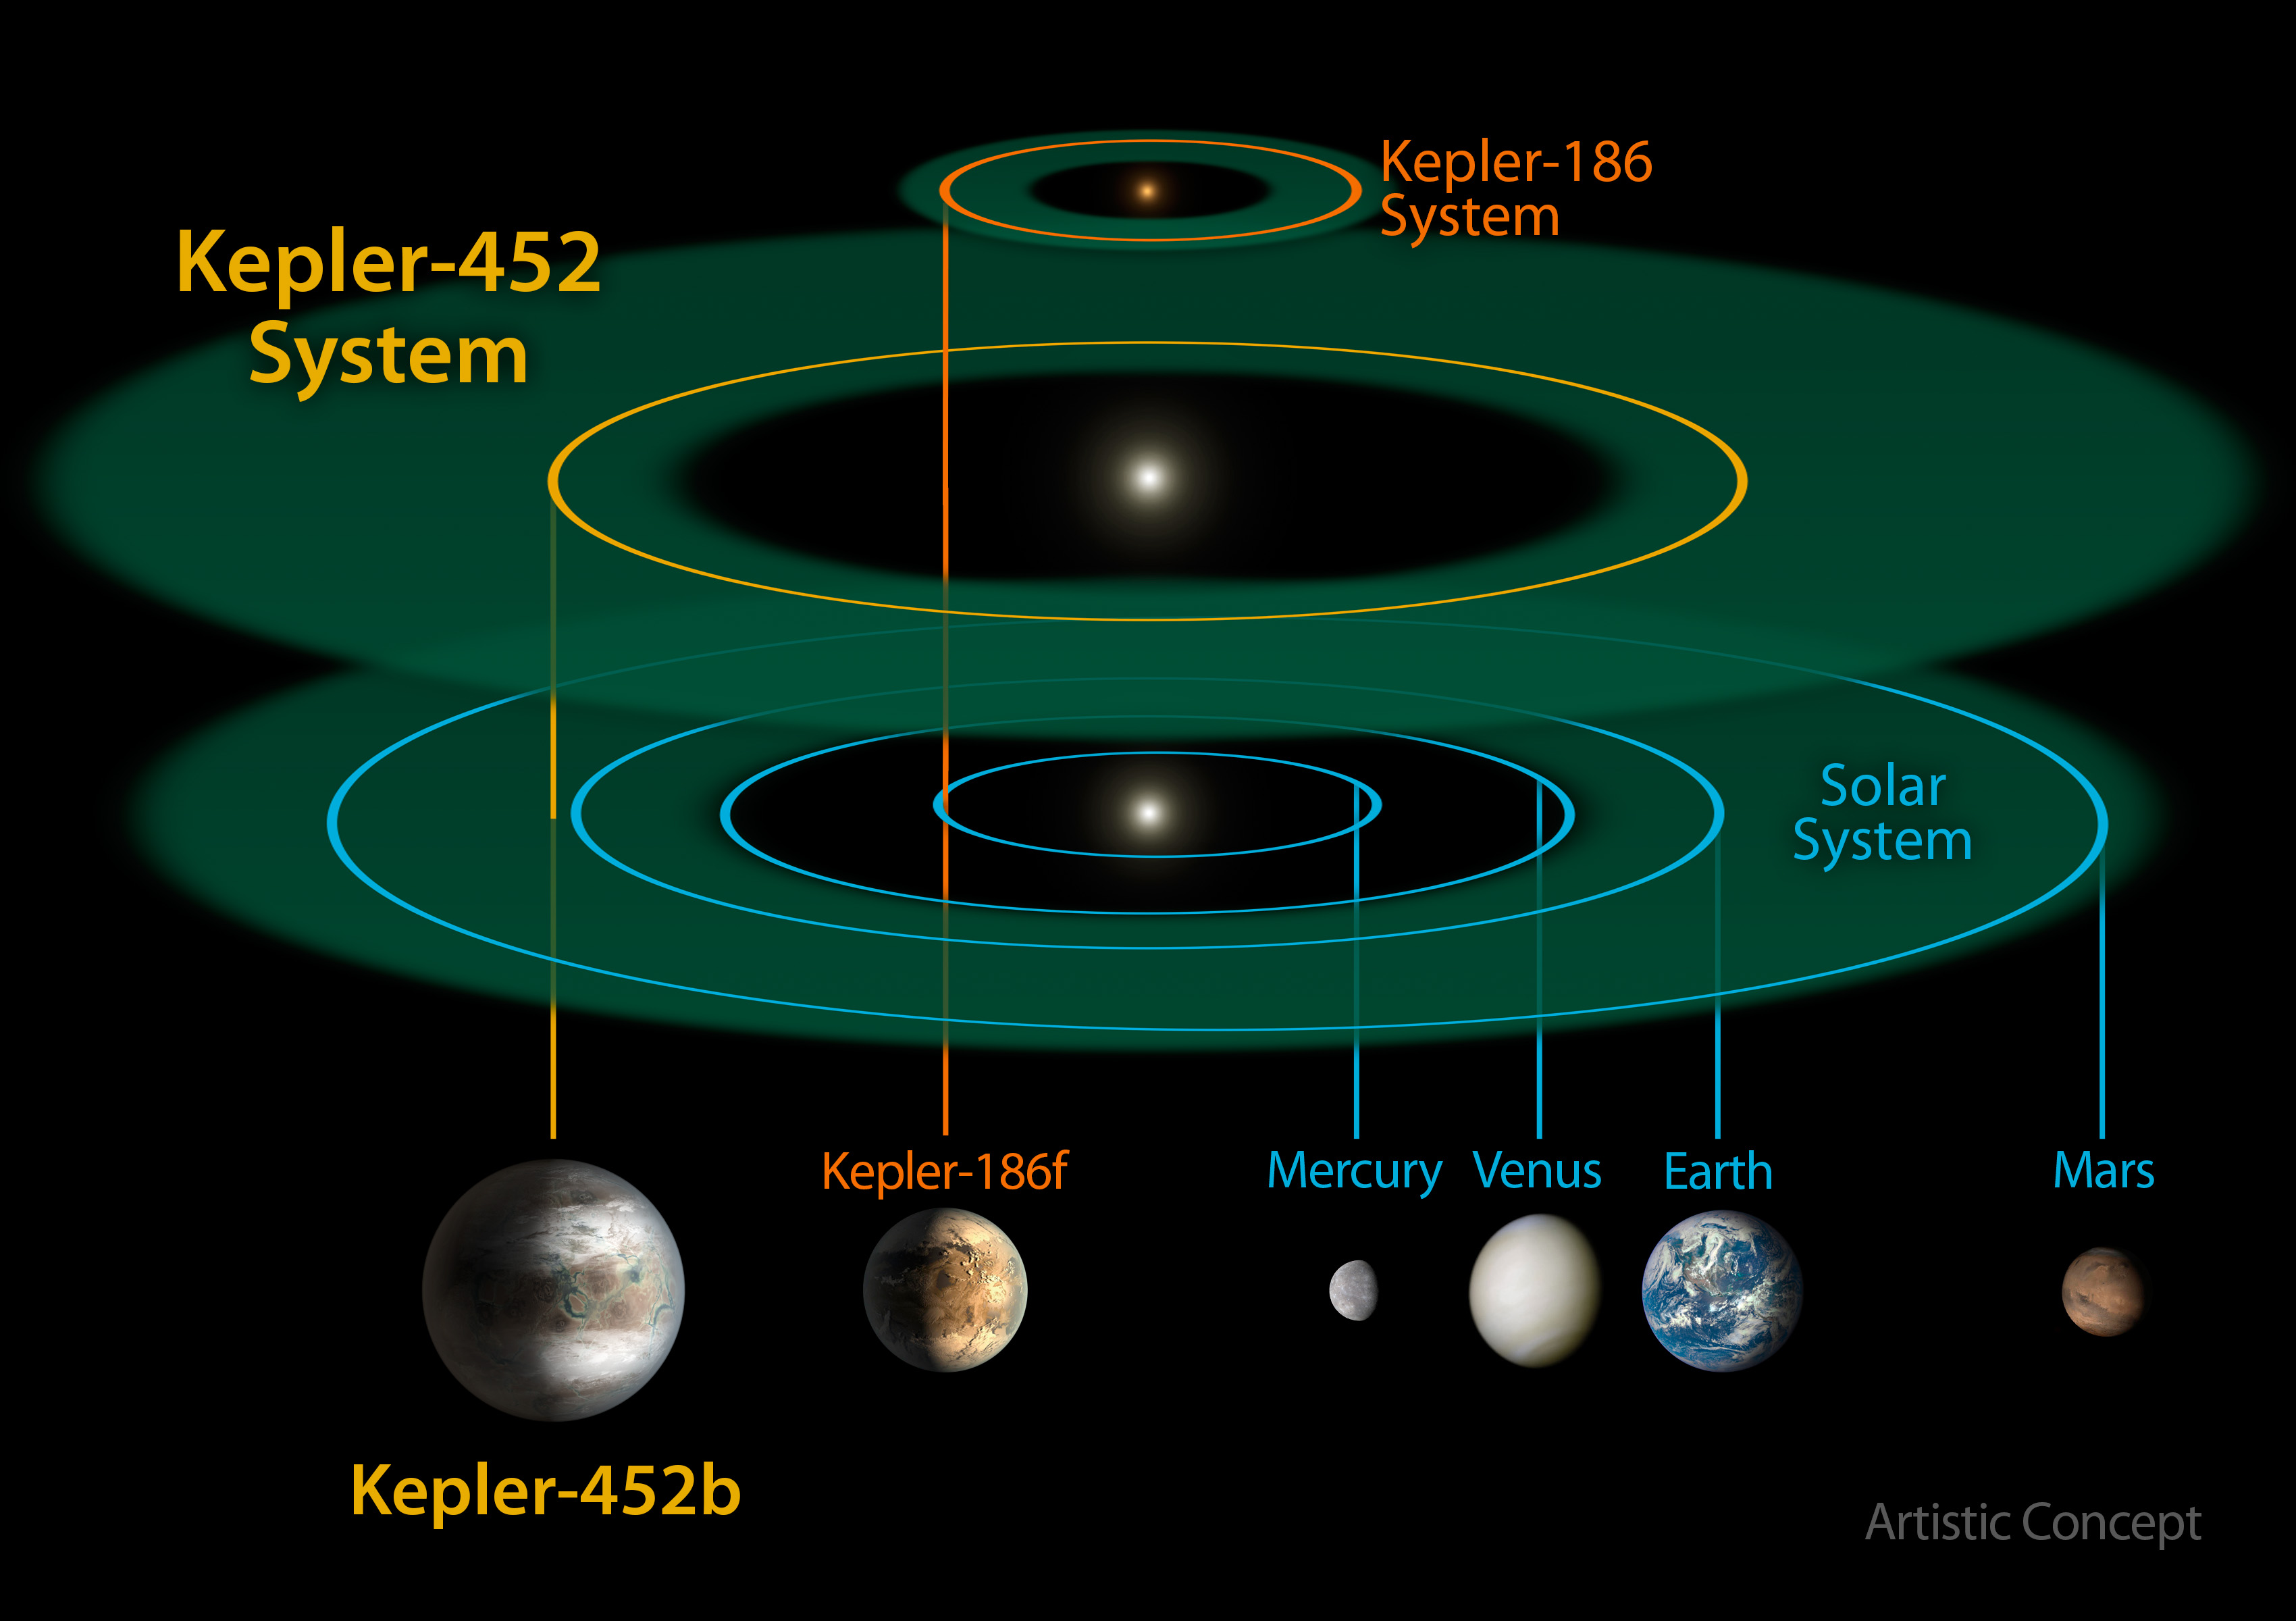 solar system models comparisons - photo #39